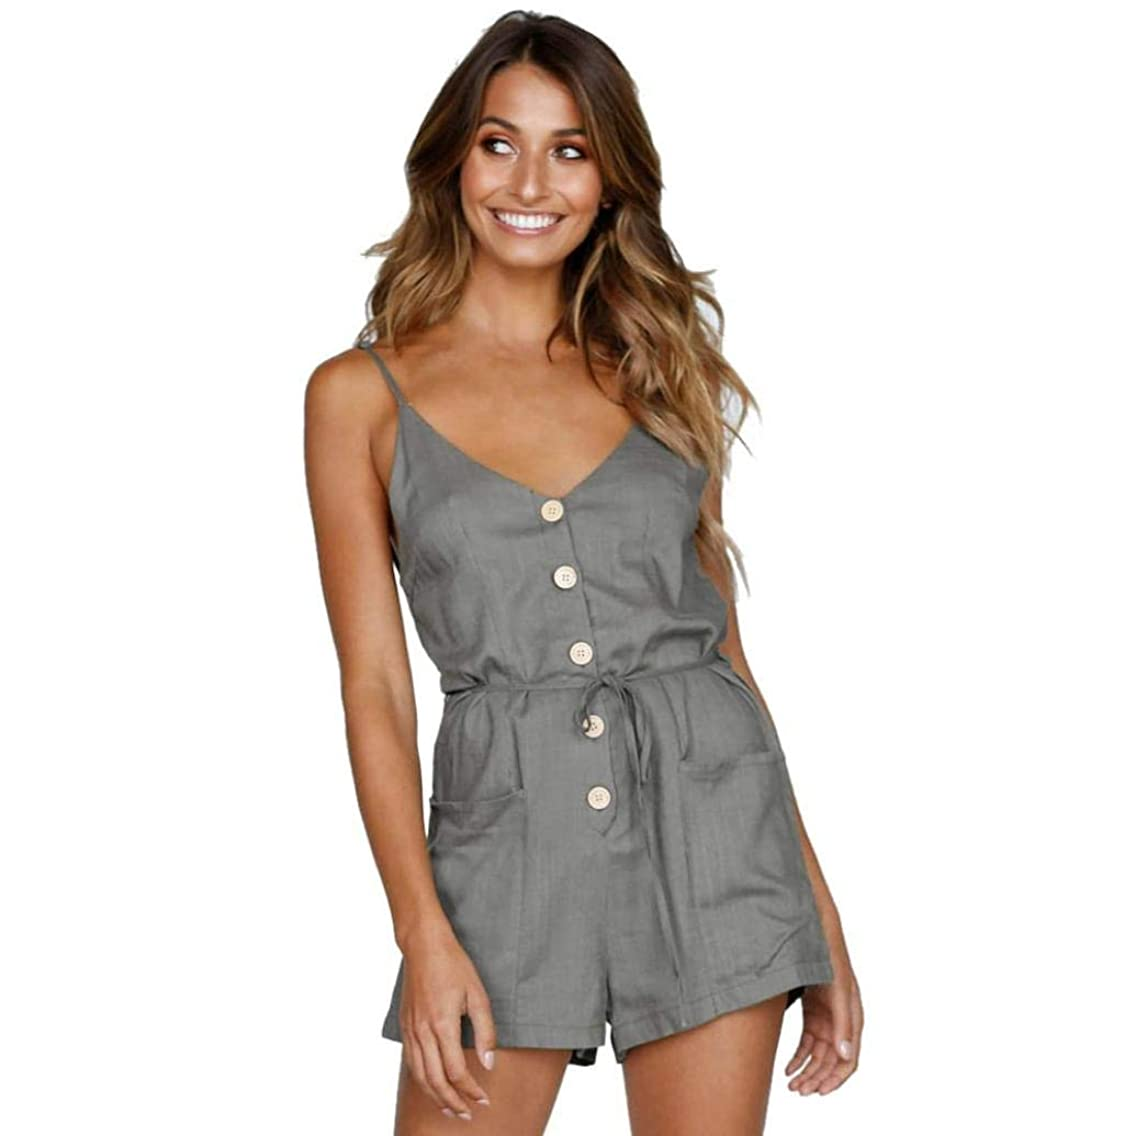 GWshop Sexy Jumpsuits, Fashion Jumpsuits,Women Summer Sexy V-Neck Pocket Bandage Button Down Rompers Backless Short Bodysuits